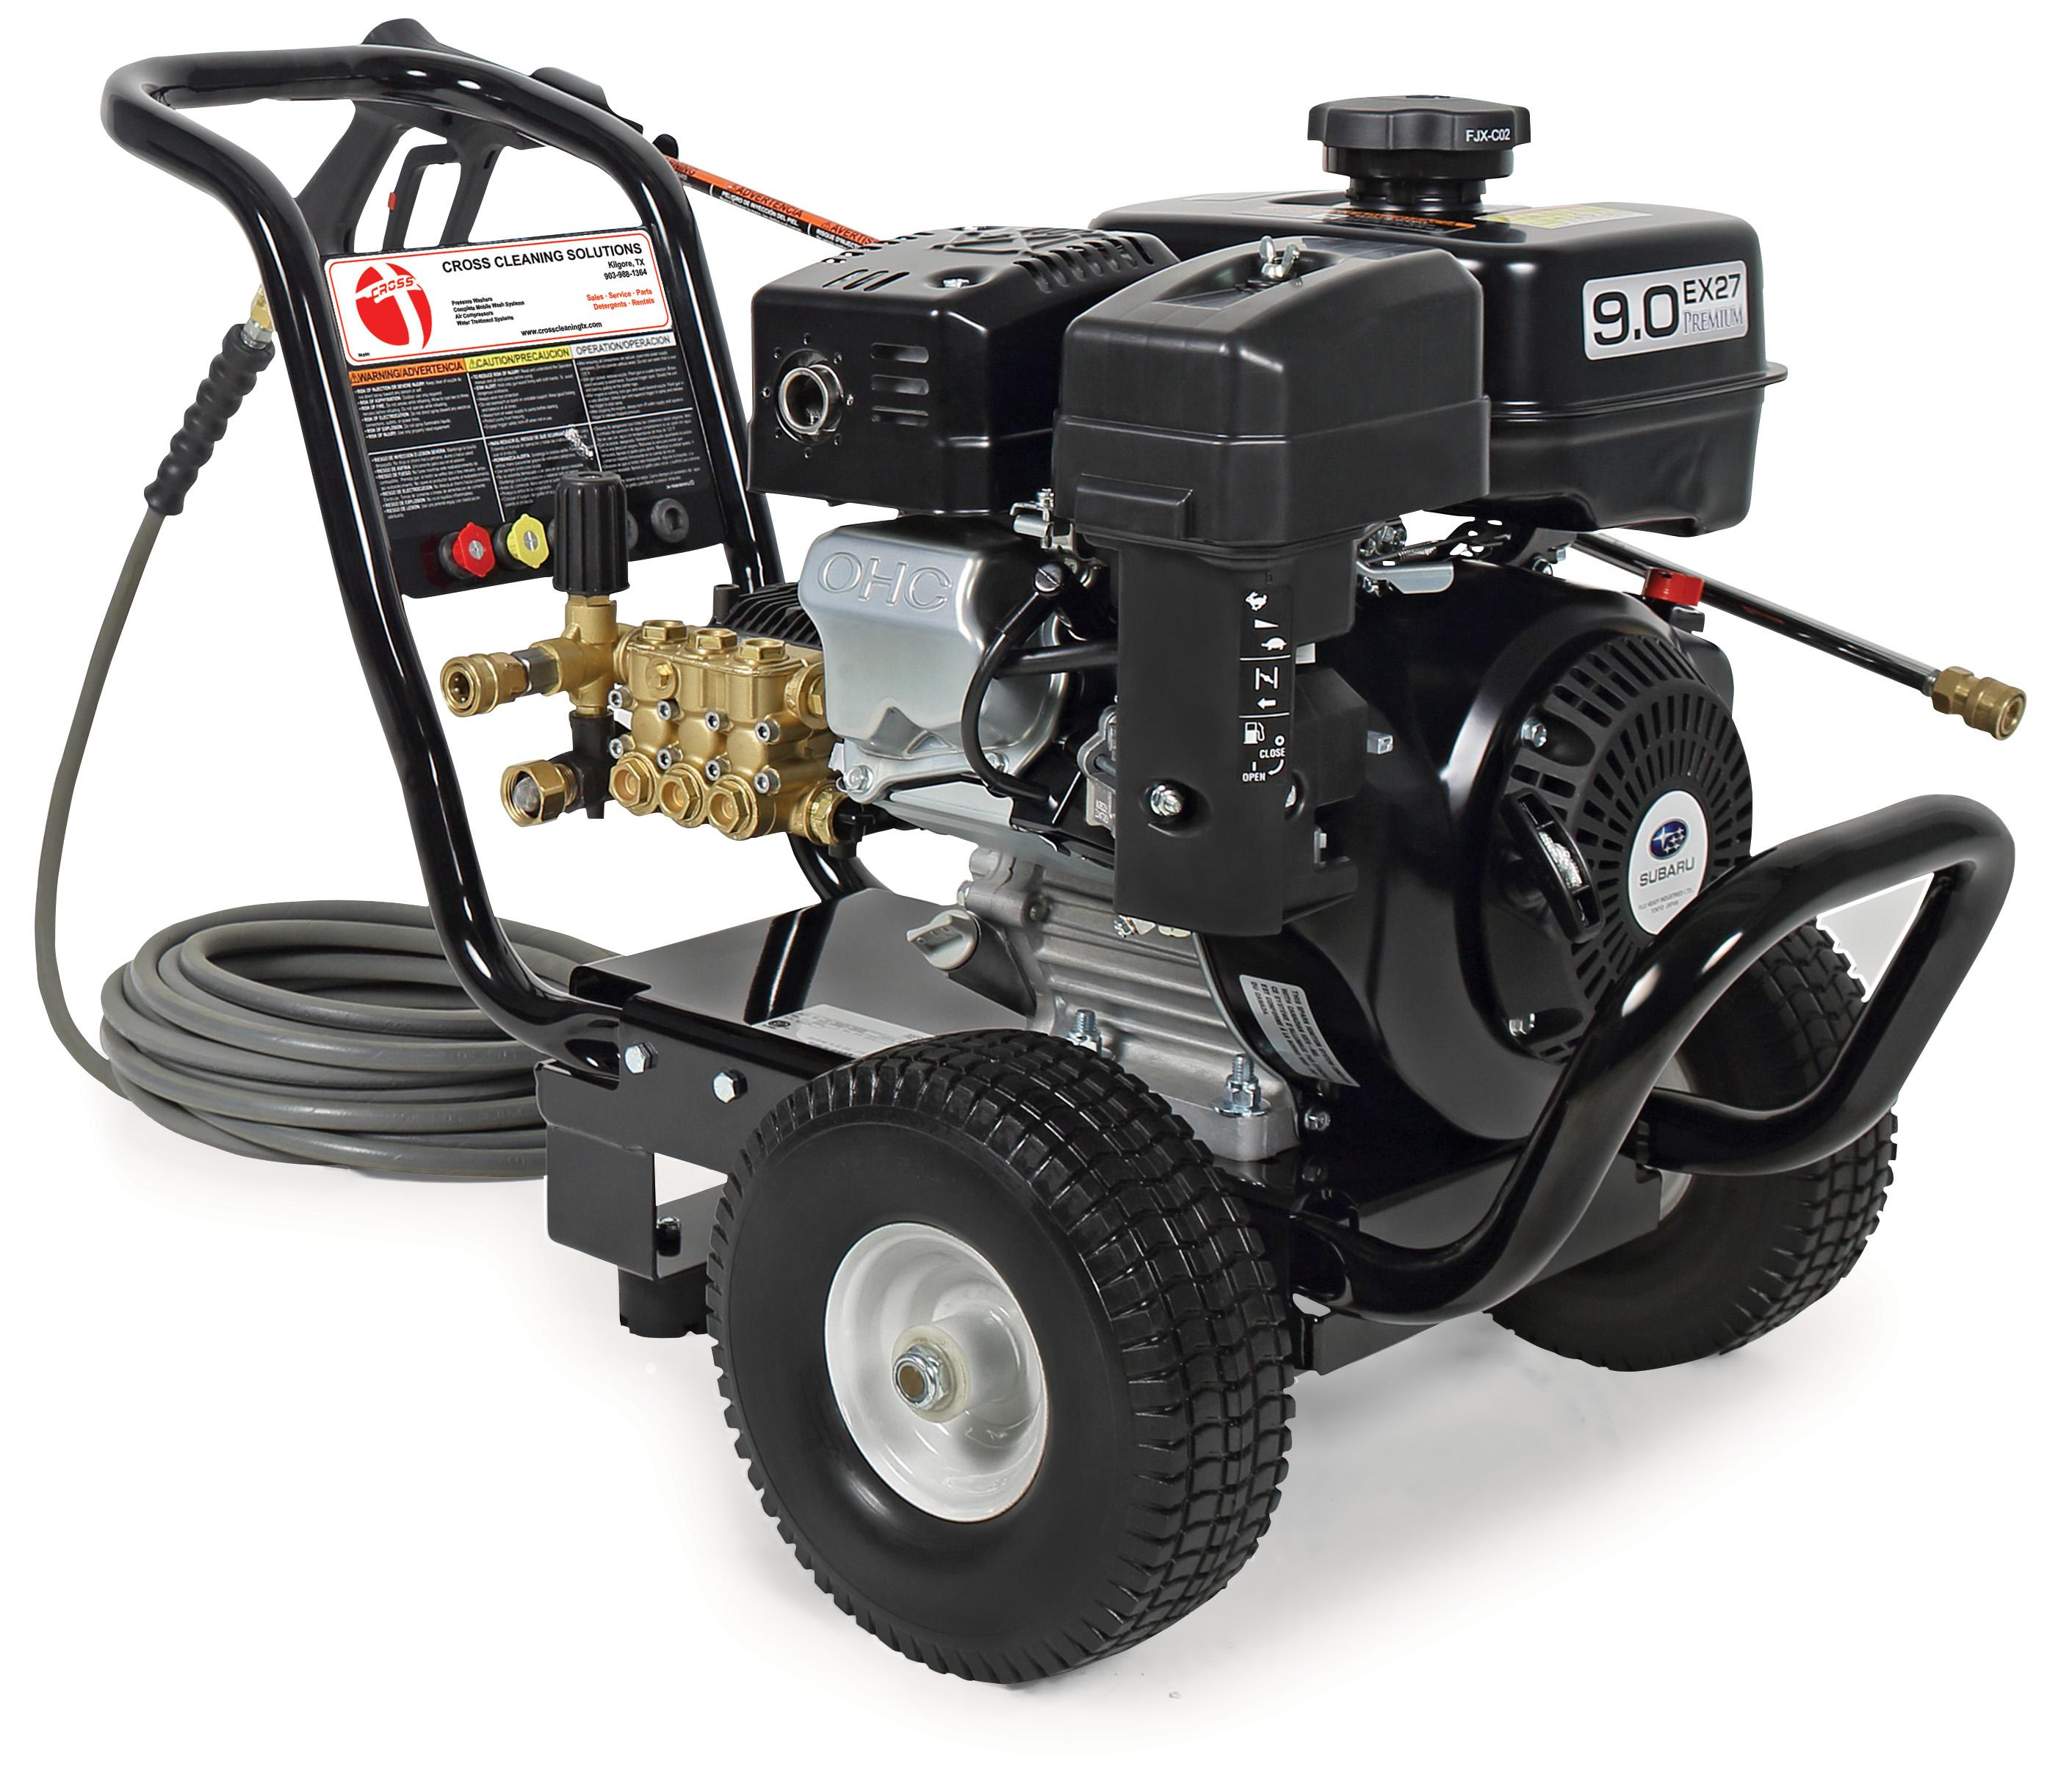 JP Series Direct Drive Gasoline Cold Water Pressure Washers